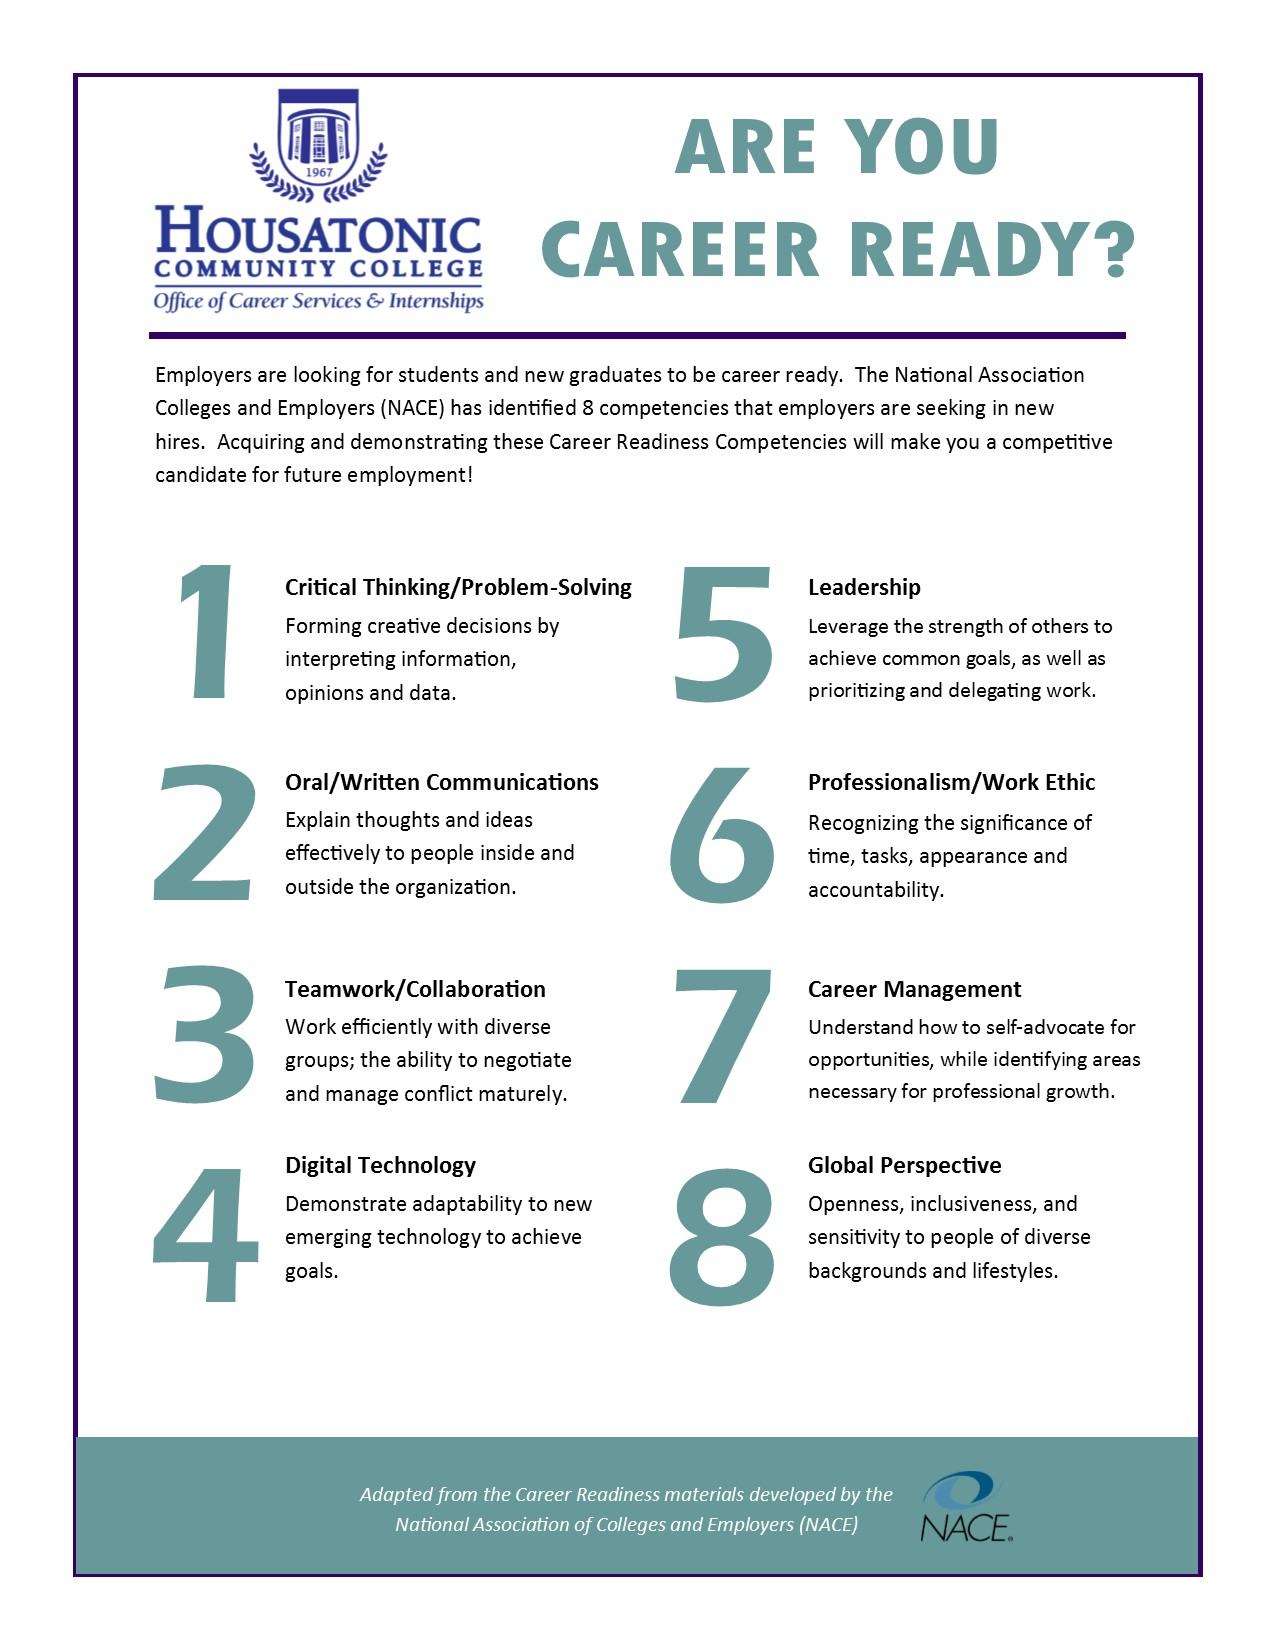 Are You Career Ready